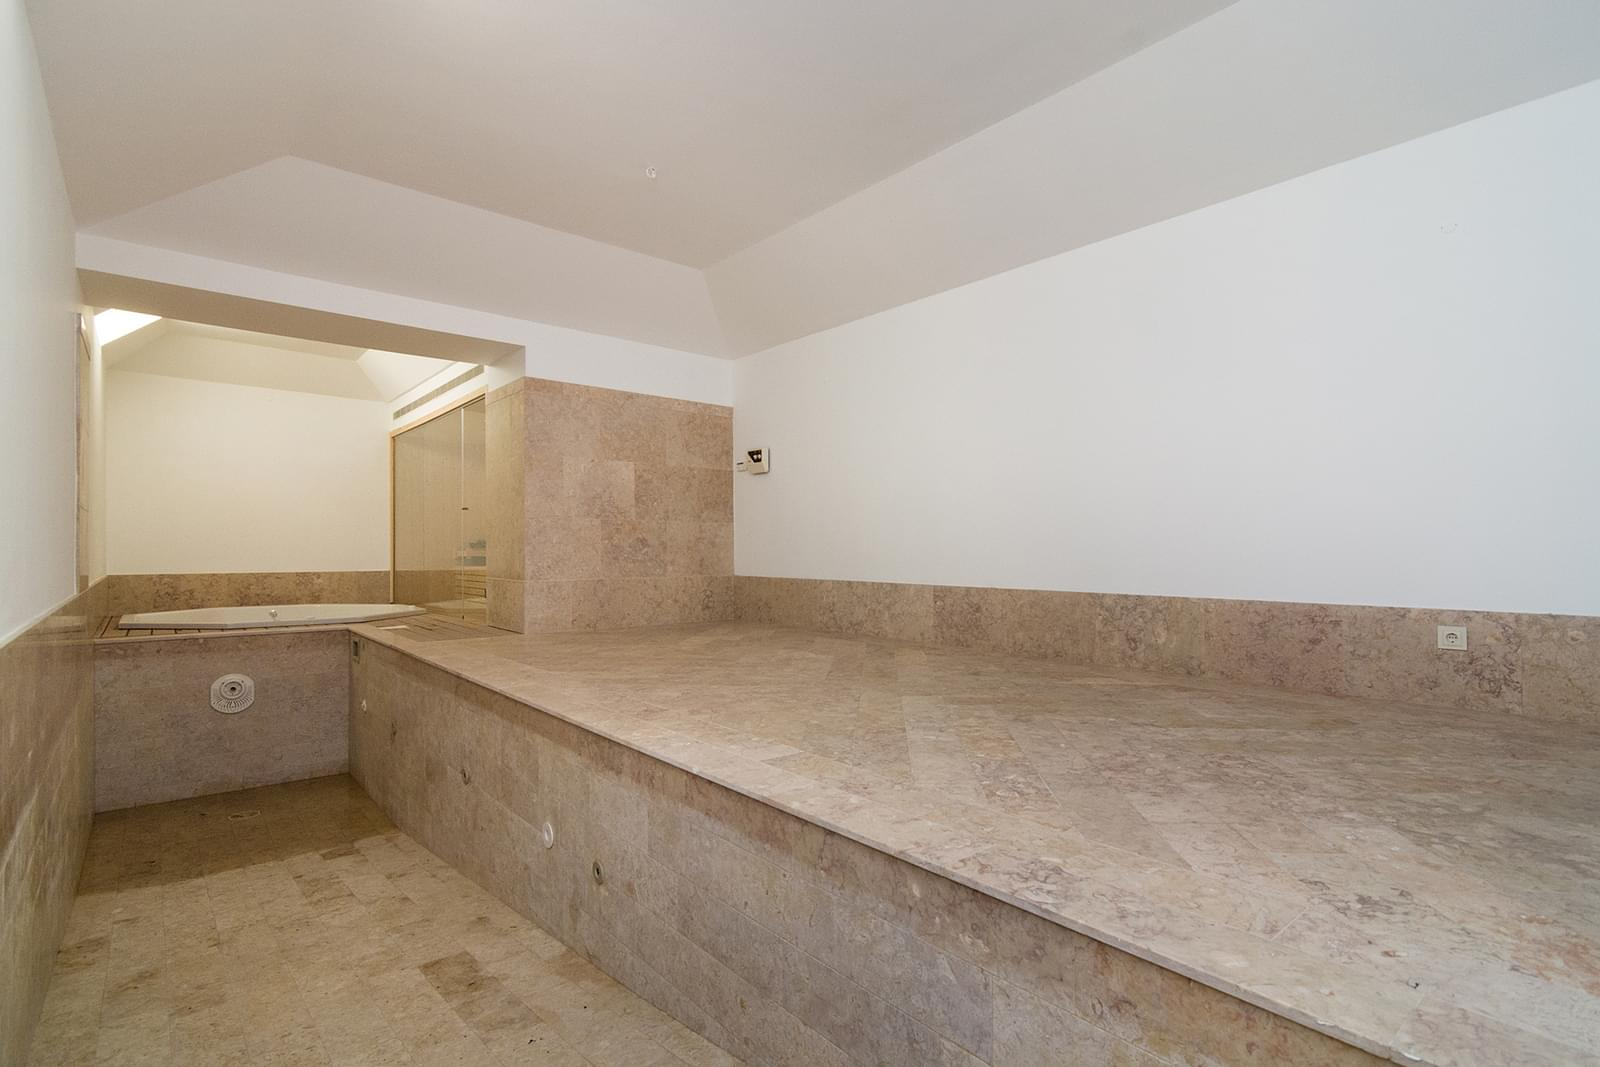 5 bedroom triplex with a swimming pool in gated community